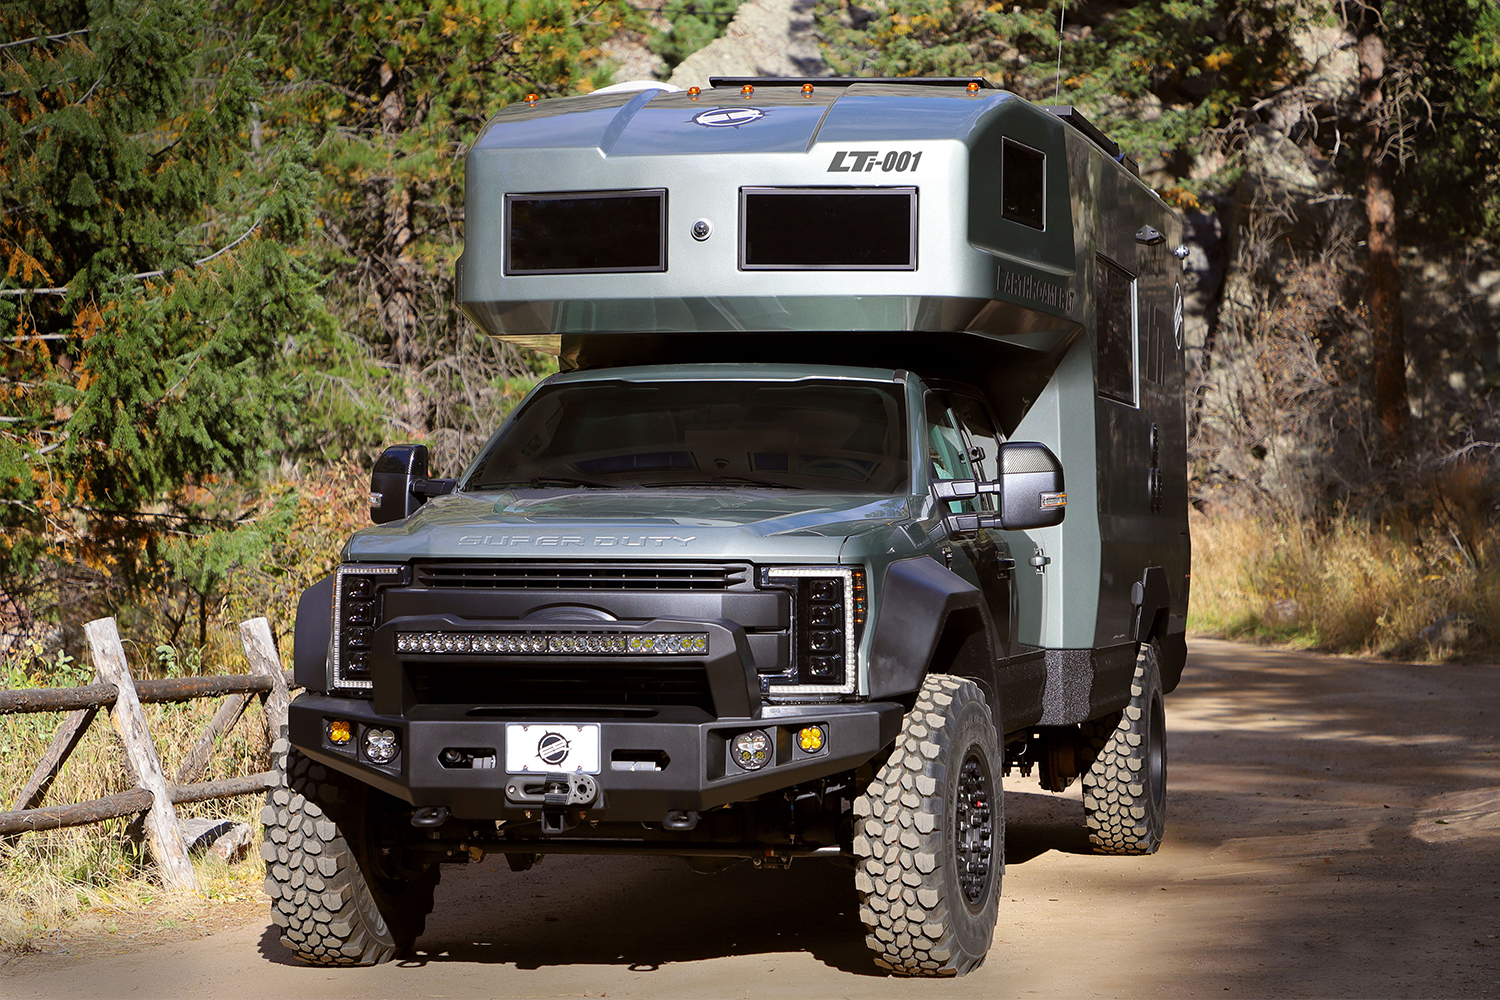 EarthRoamer LTi RV driving in the outdoors